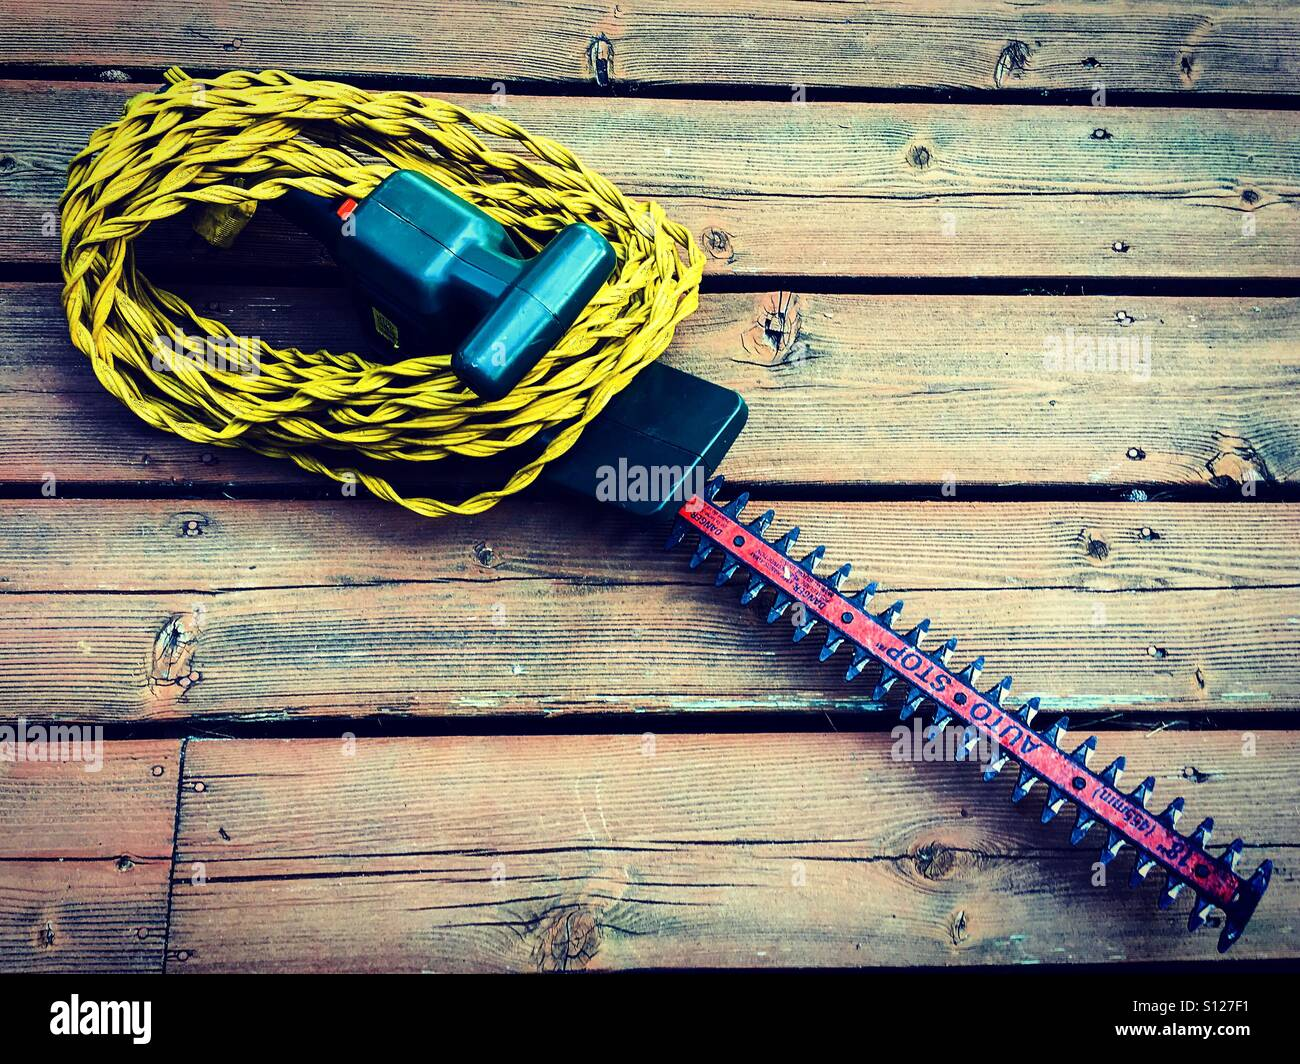 Electrical trimmer - Stock Image